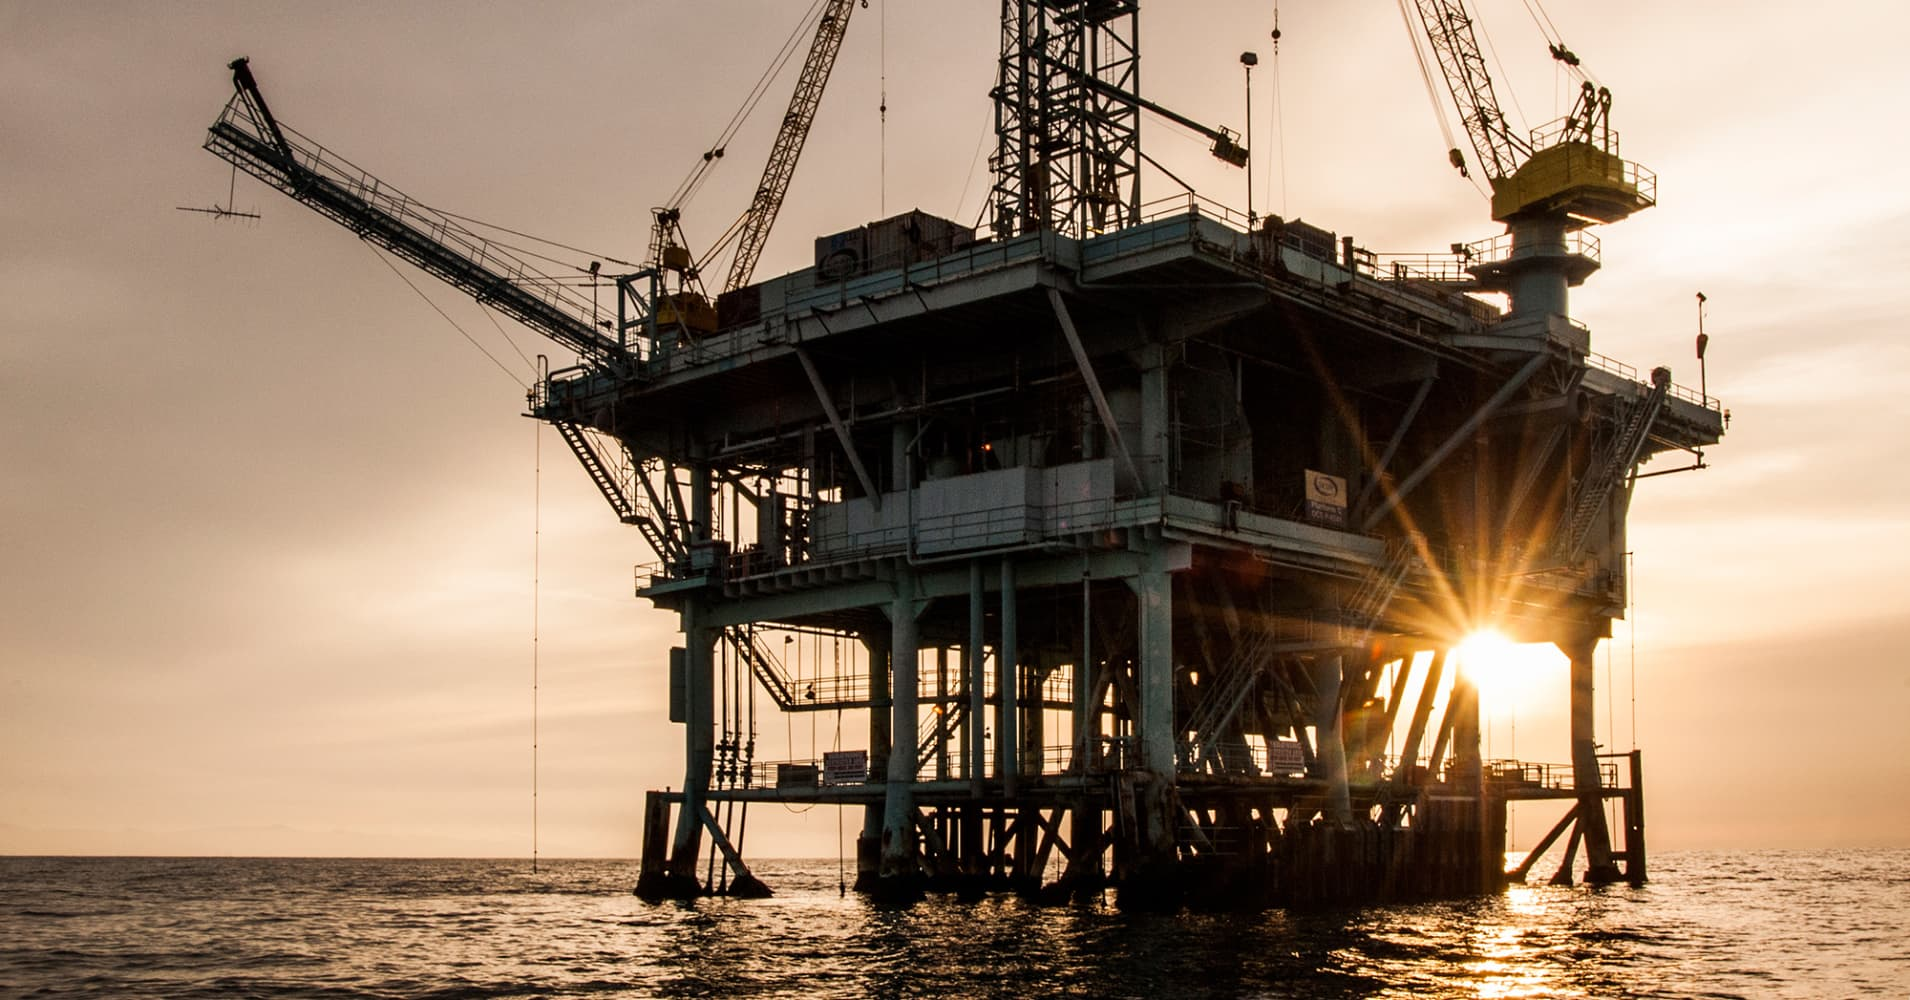 article analysis on negotiations to pacific oil company It's a mountain of a task for local companies from small countries like samoa   after years of negotiations, pacific oil's director, fanene samau.